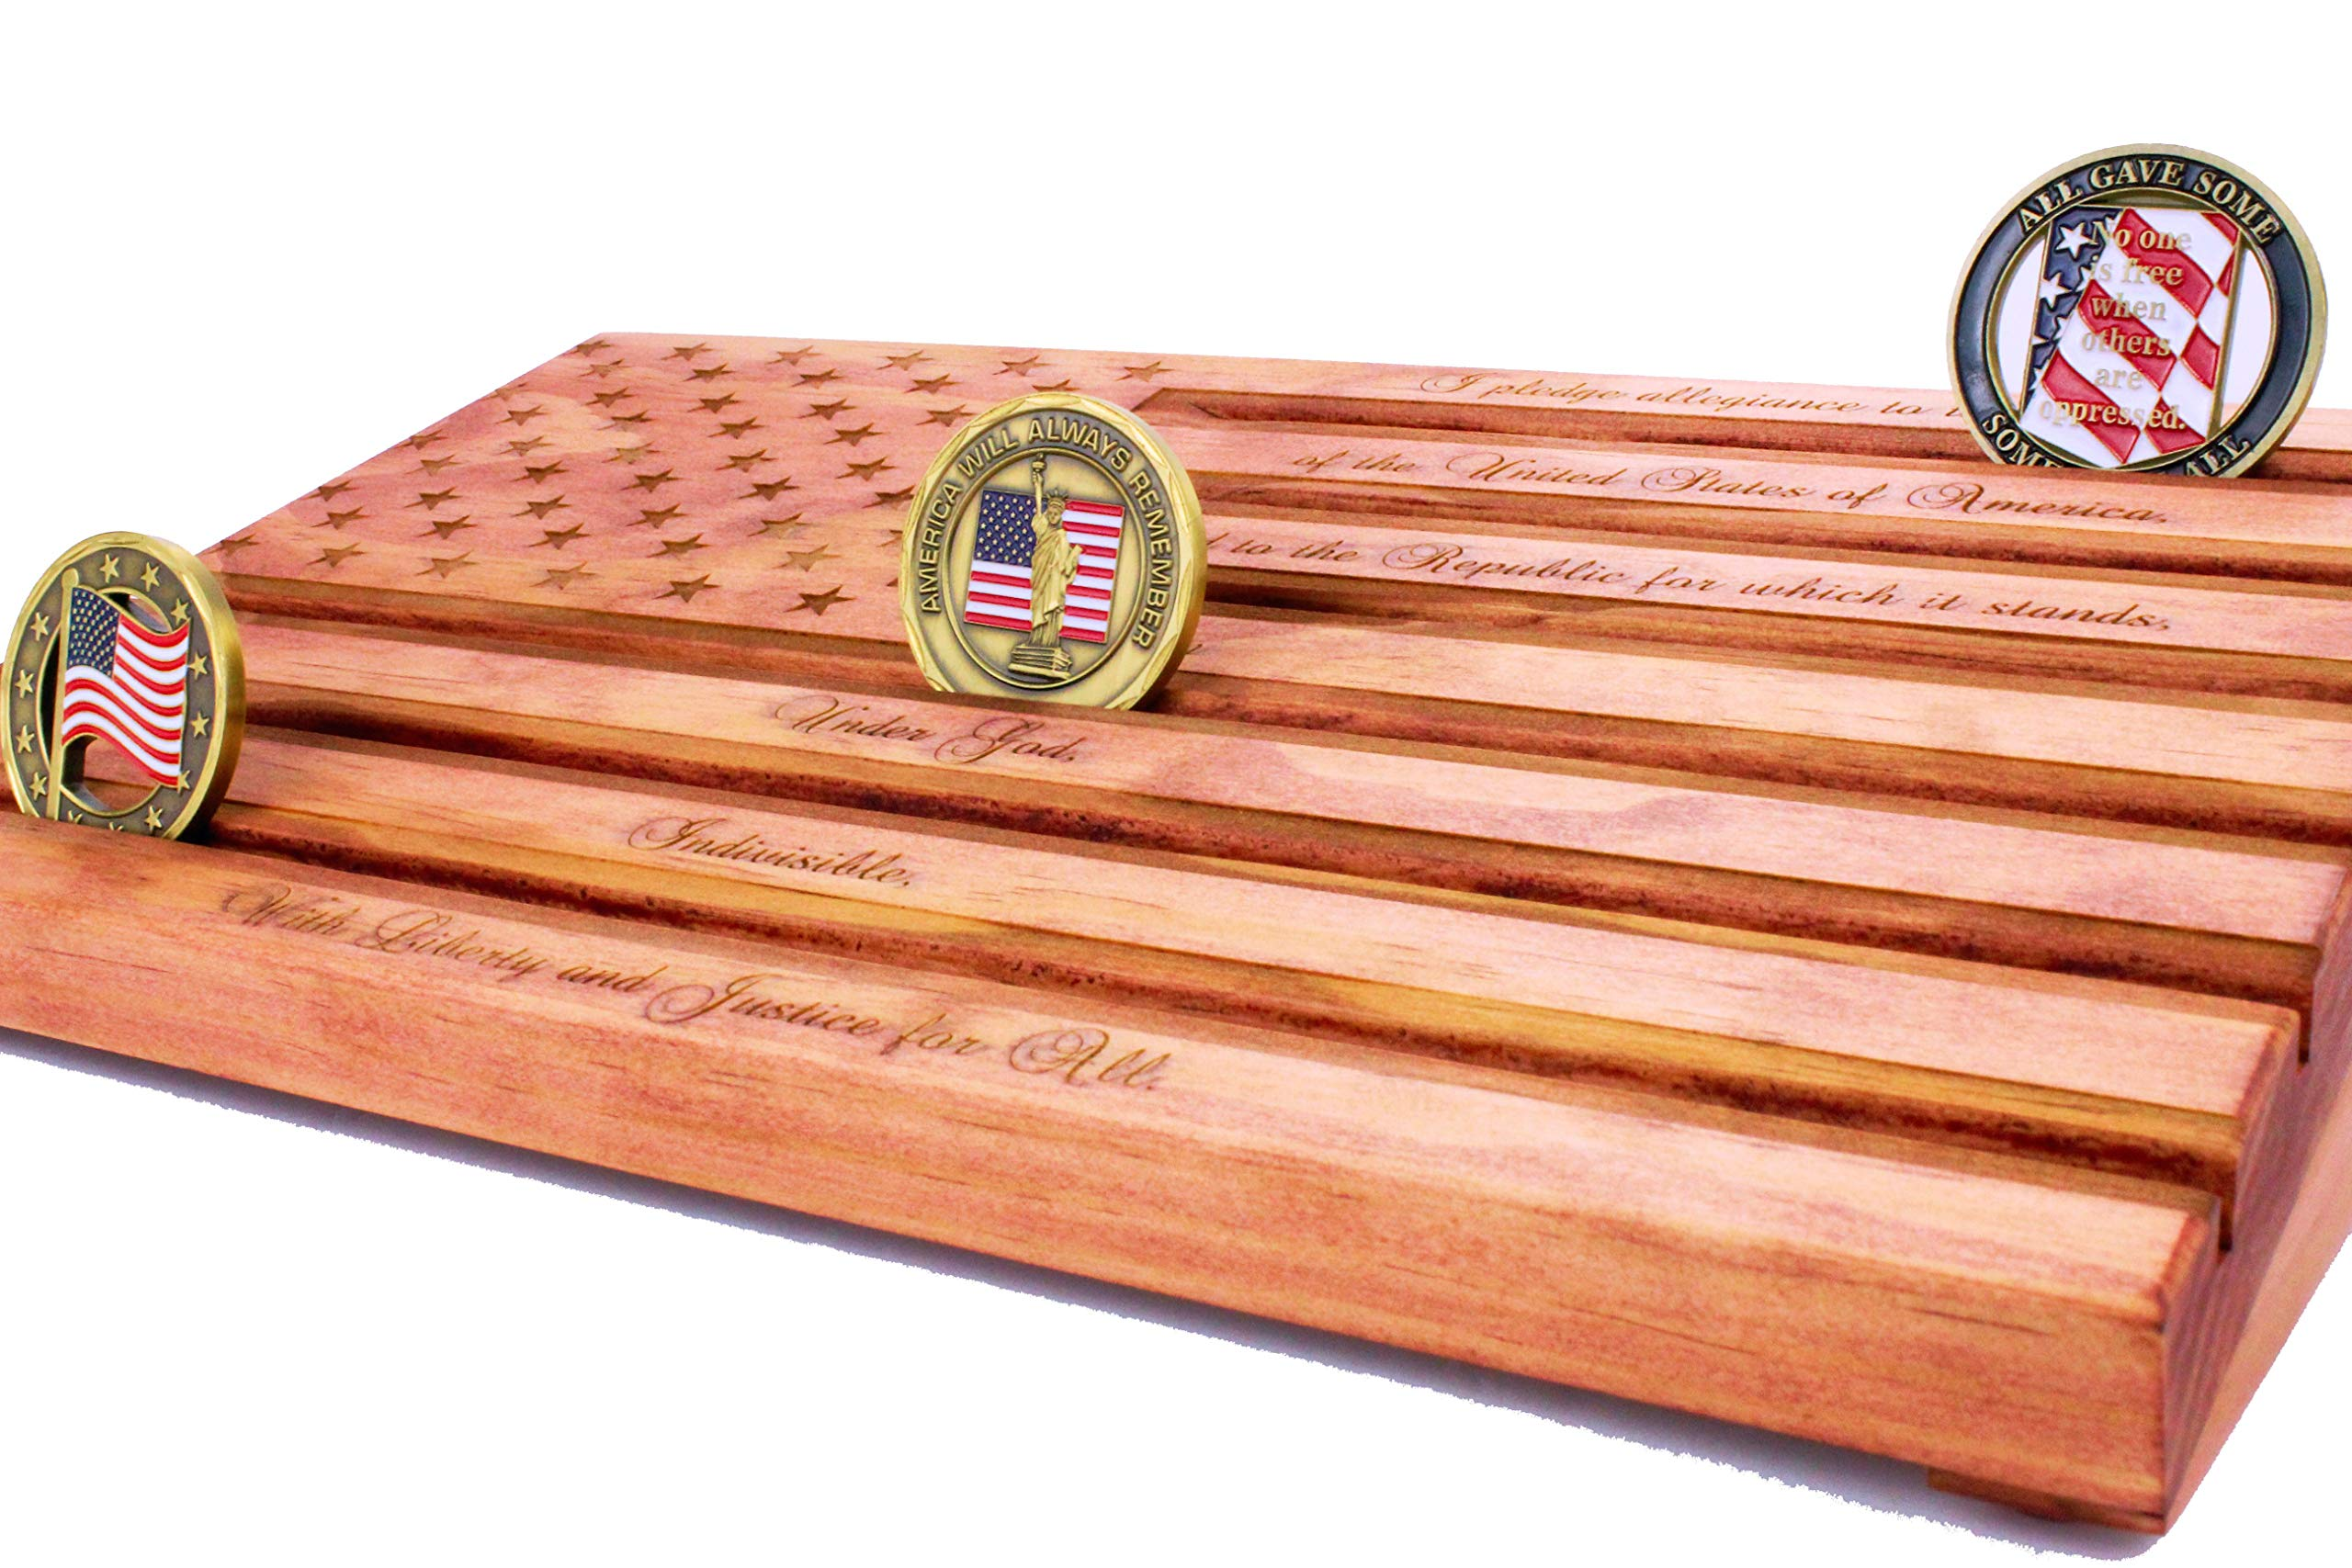 Red Pledge of Allegiance Challenge Coin Display by LOKI ENGRAVING